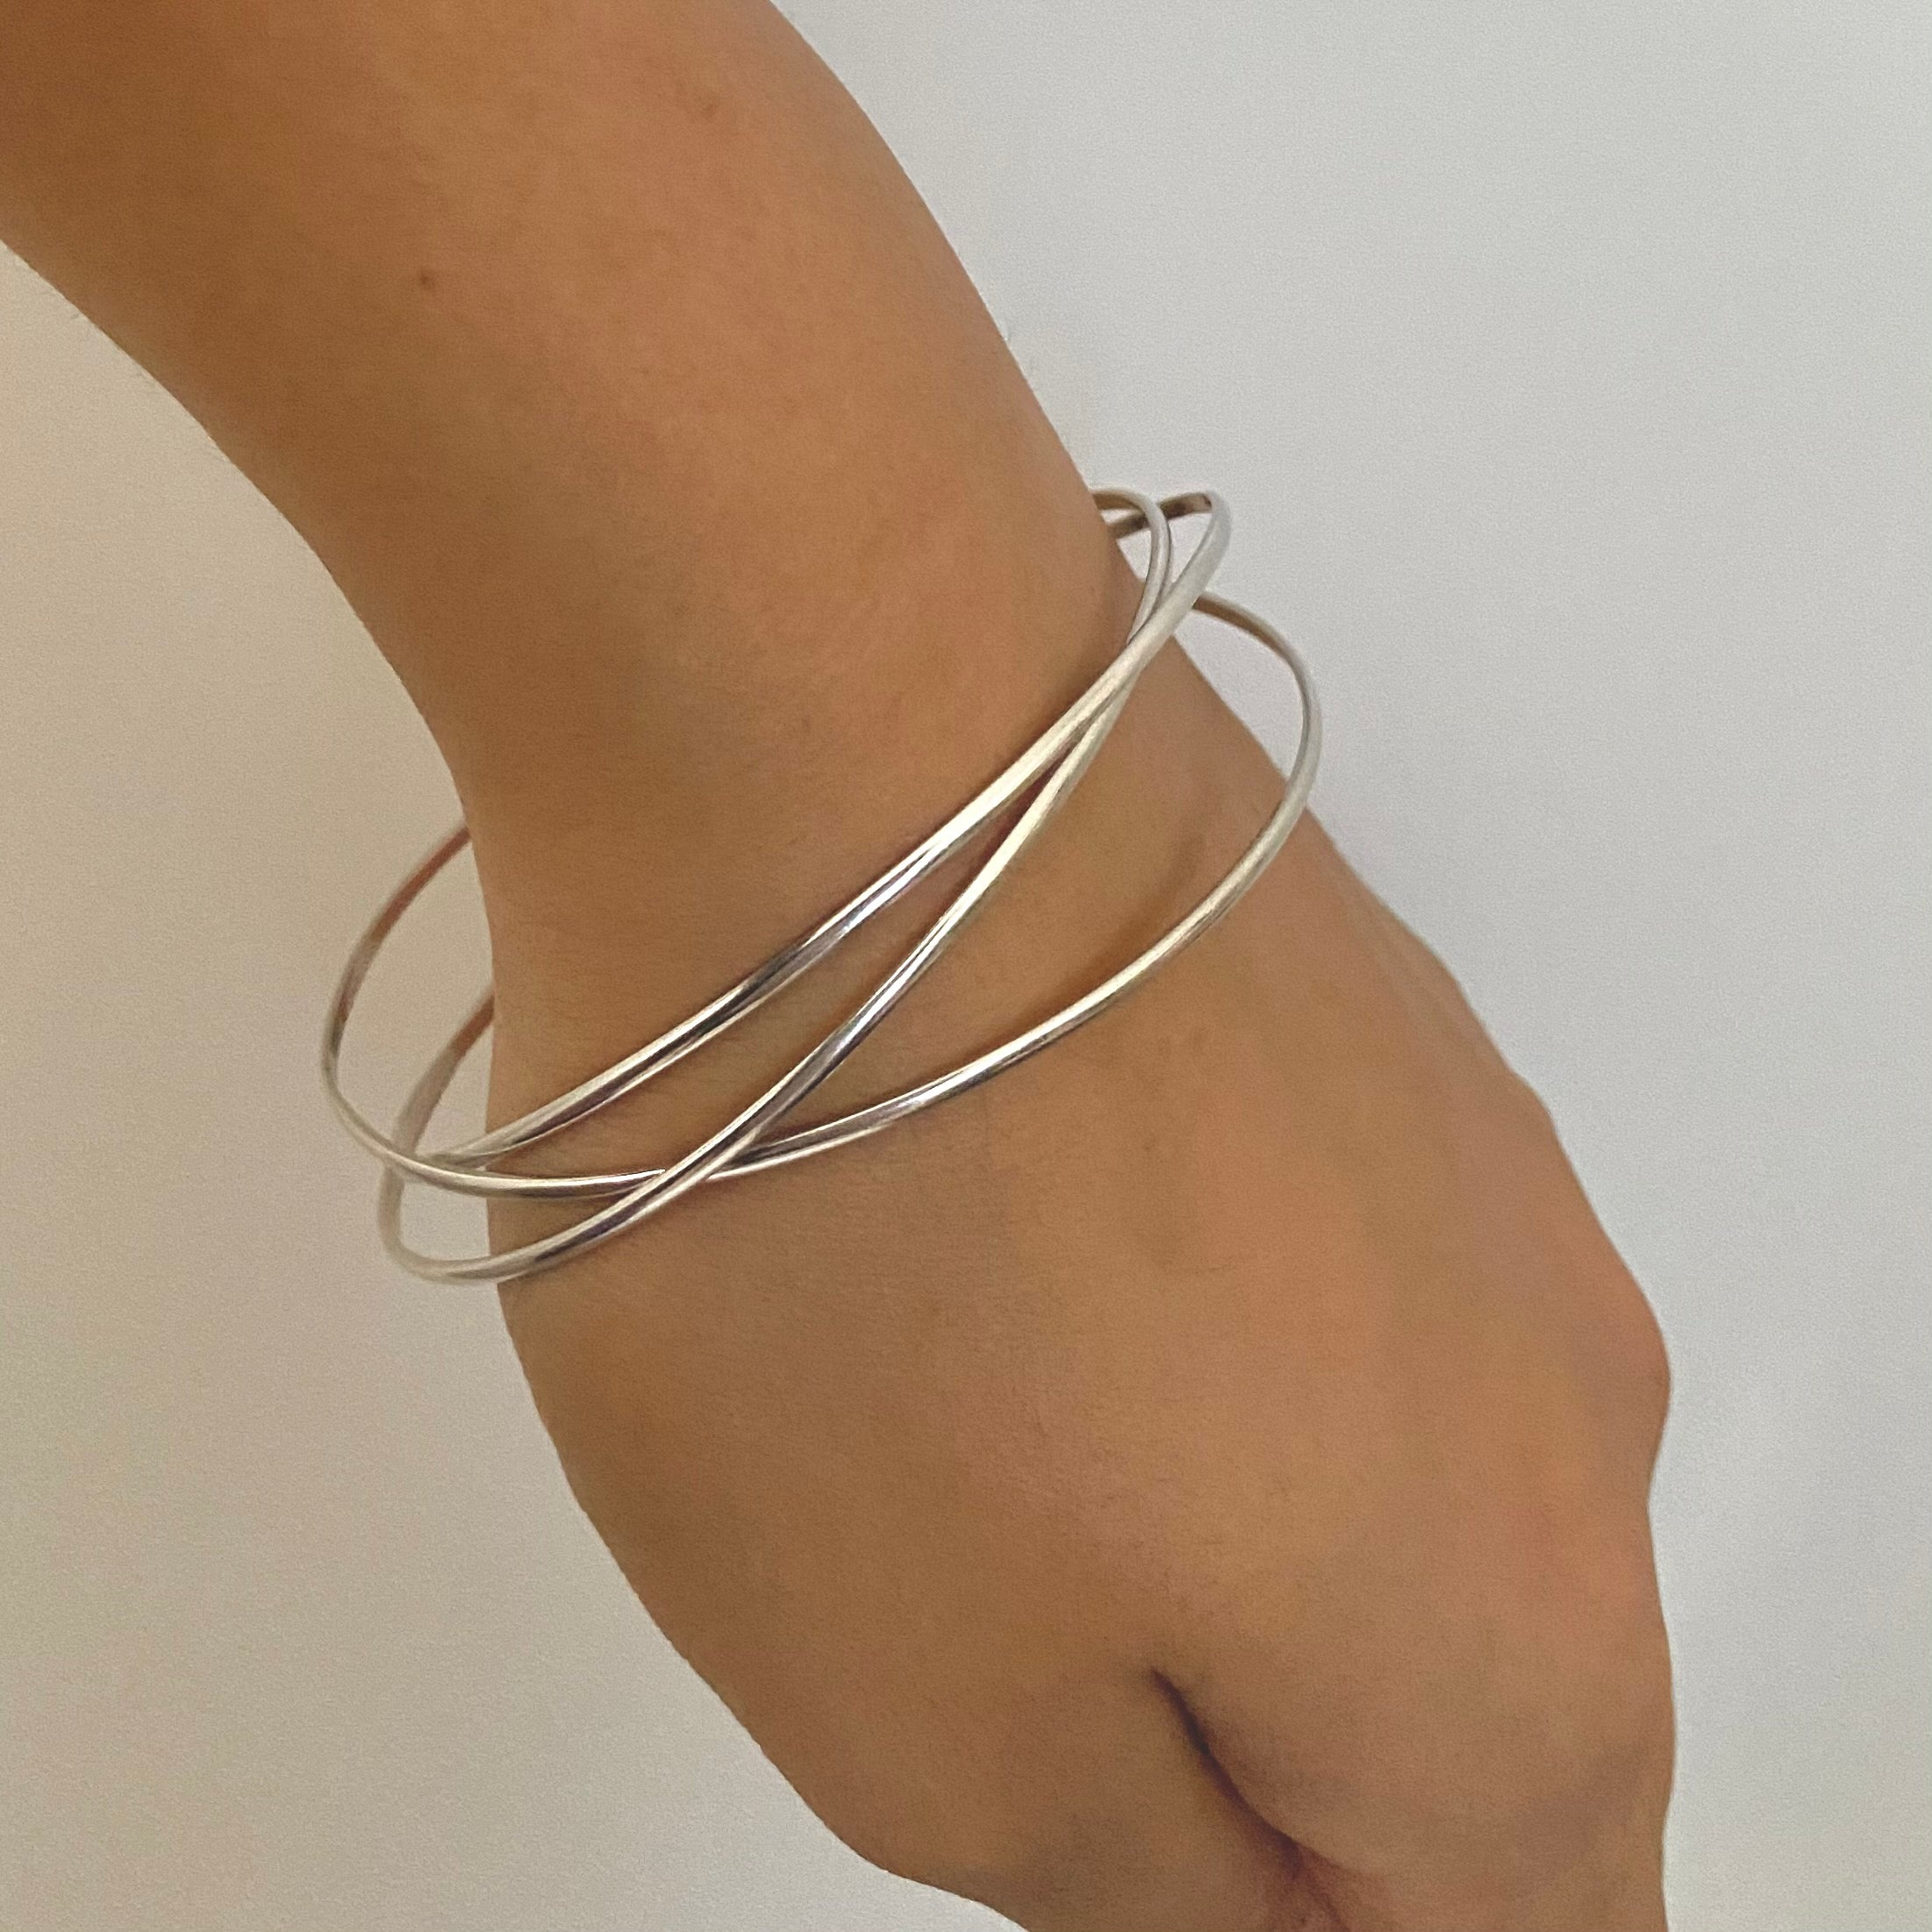 Intertwined Silver Bangle